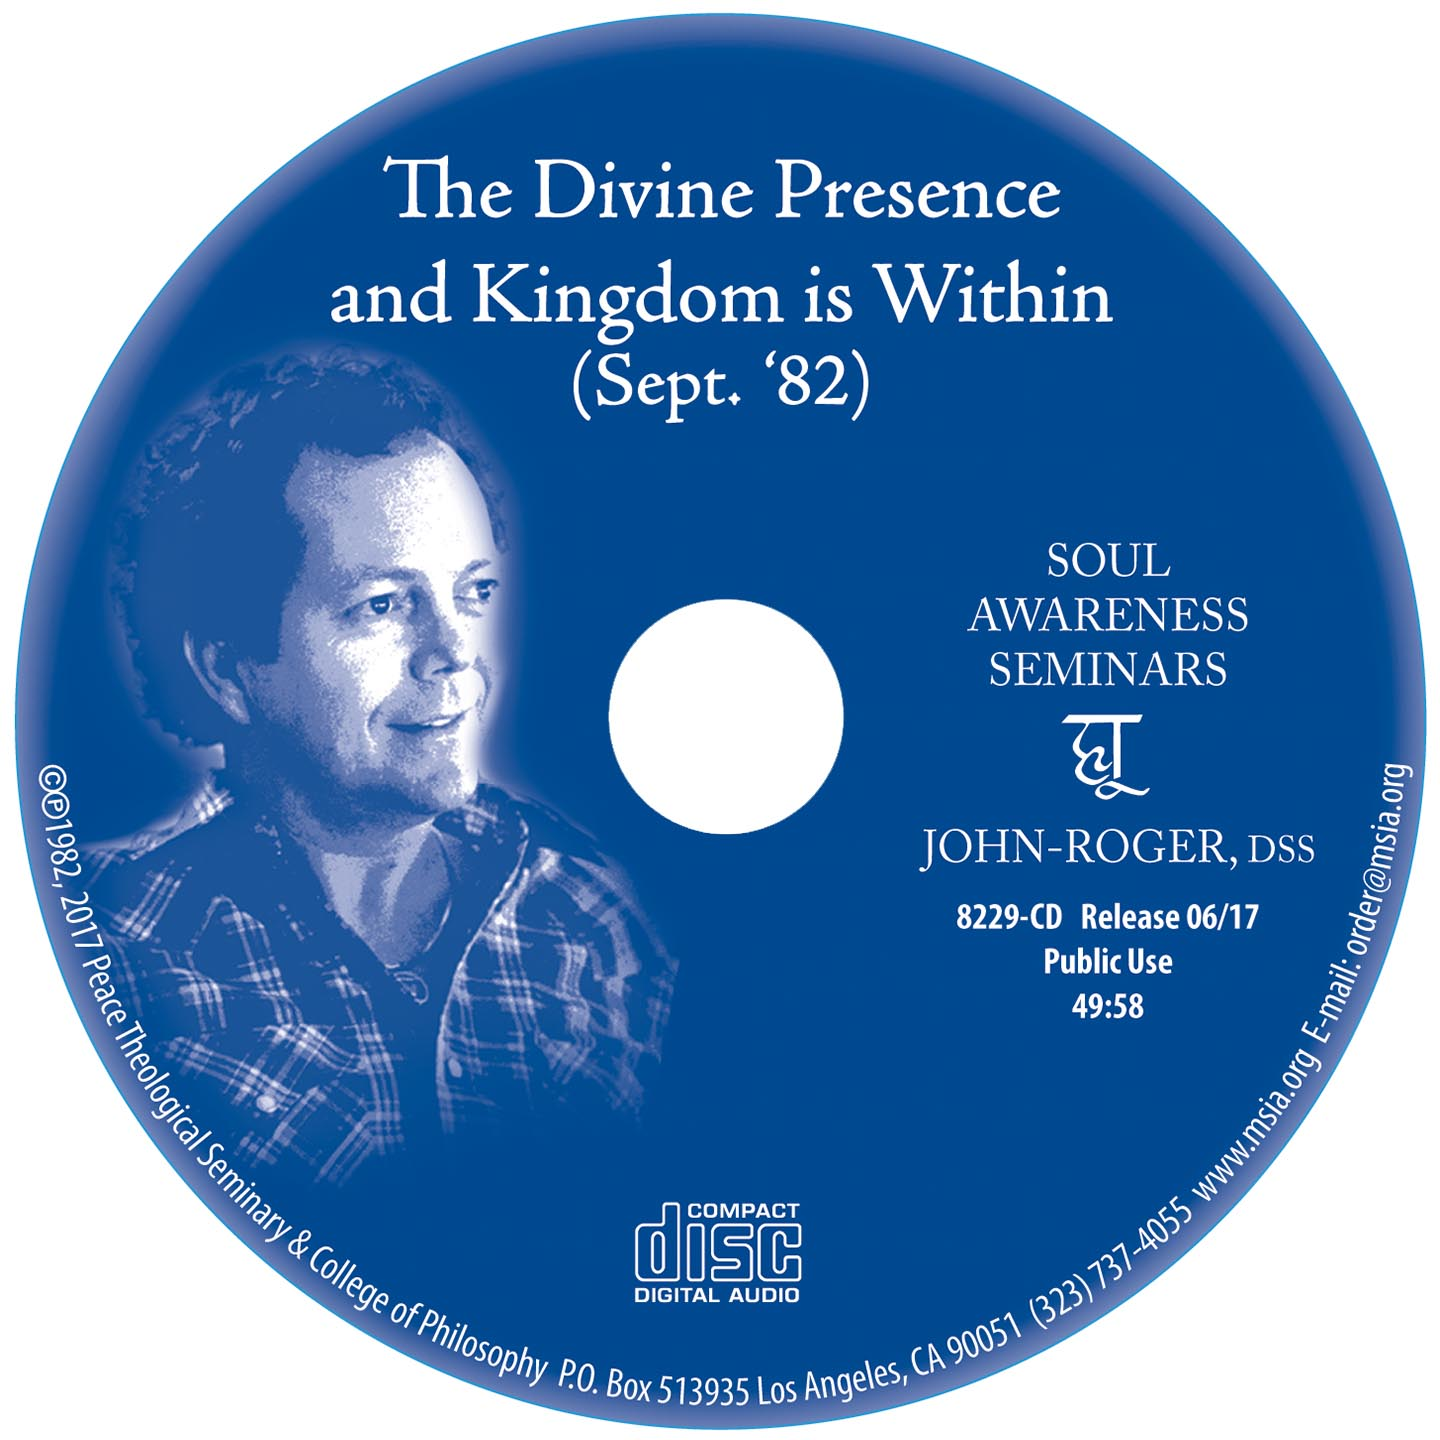 The Divine Presence and Kingdom is Within MP3